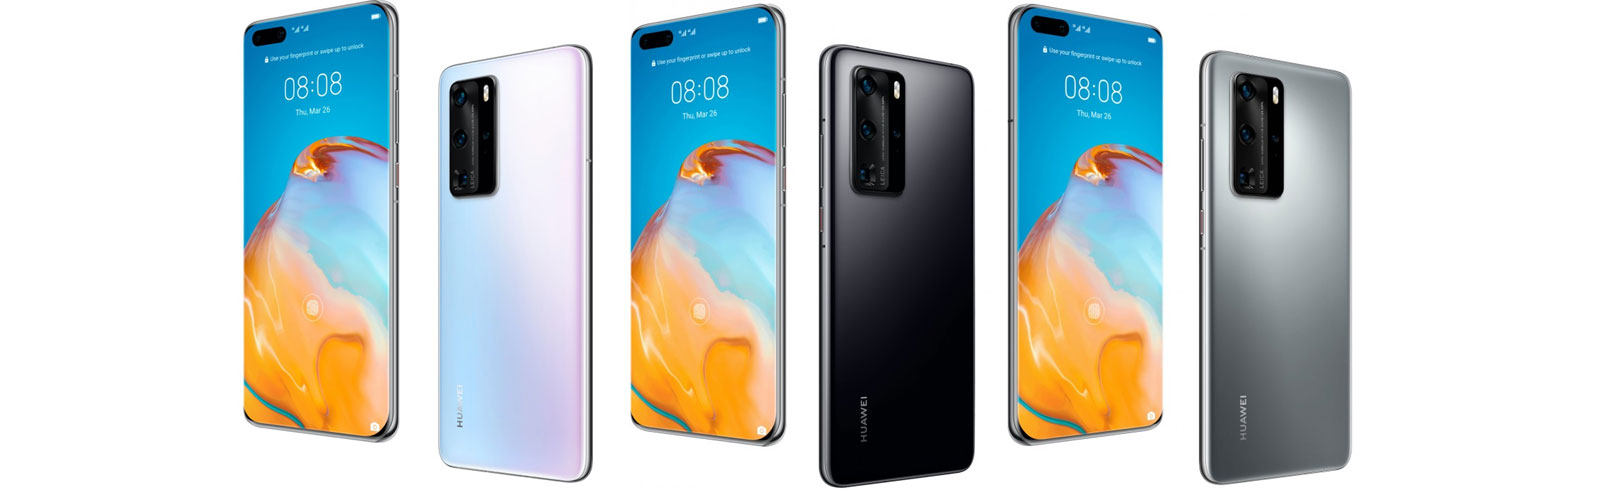 Huawei P40 and Huawei P40 Pro specifications and features